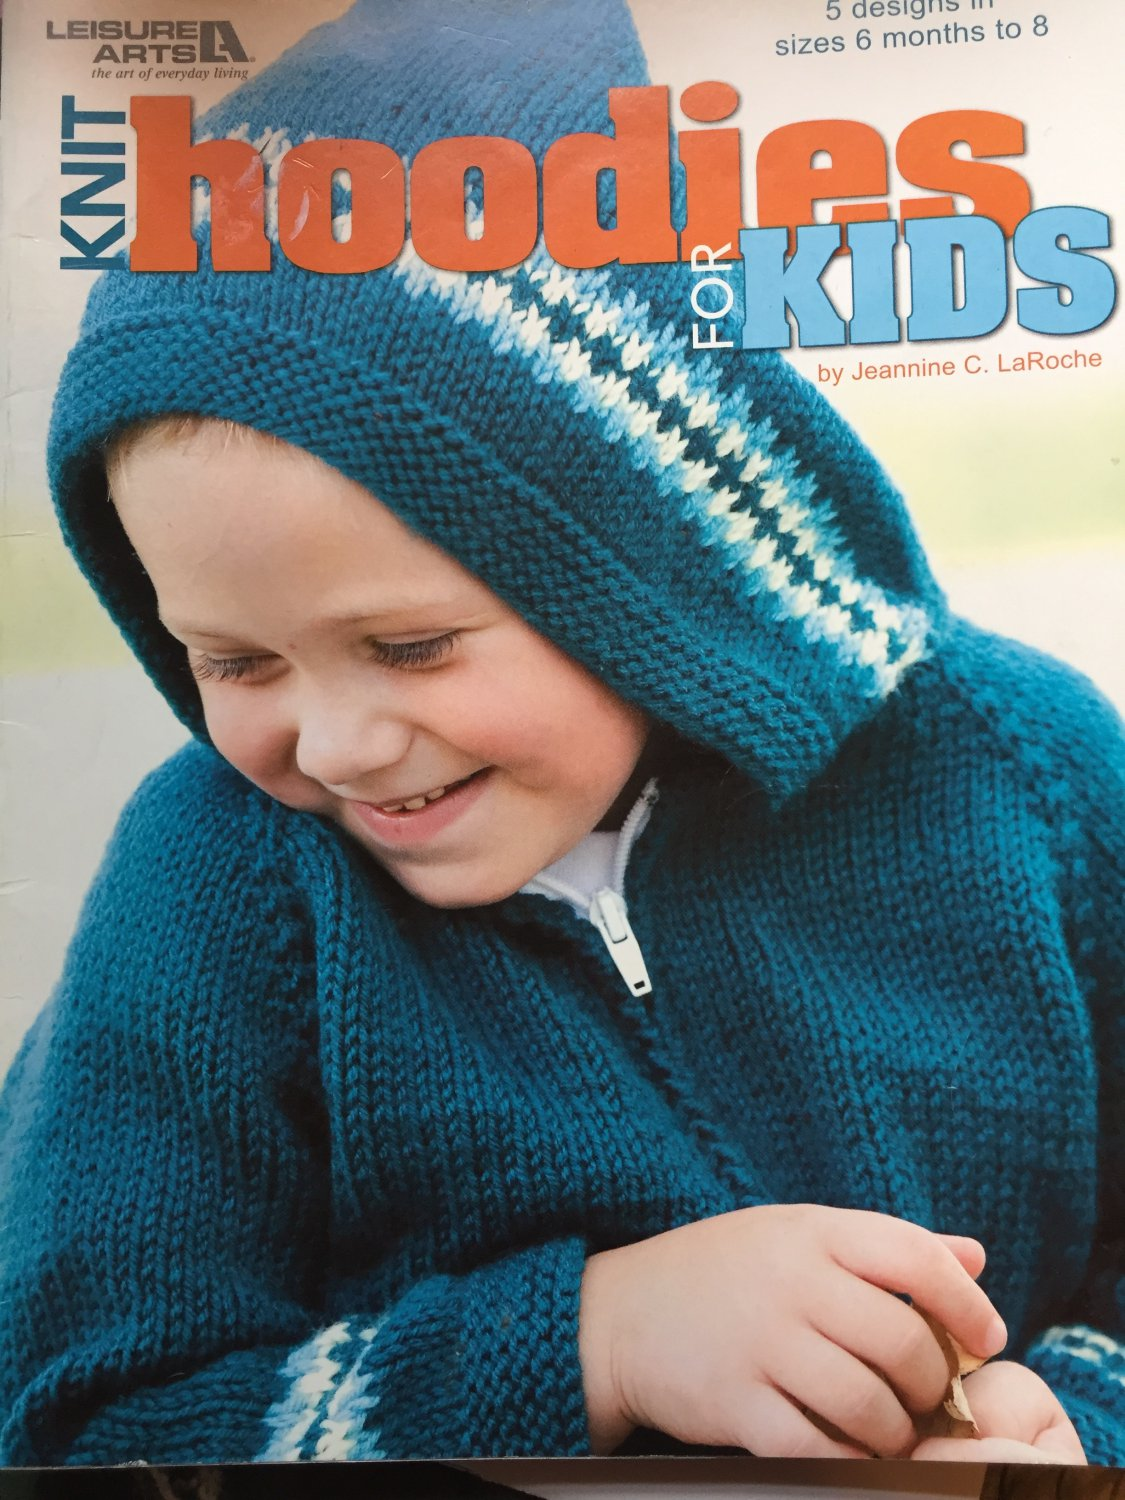 Knit Hoodies For Kids 5 designs Kntting Book Leisure Arts 4453 6 mo. to 8 years